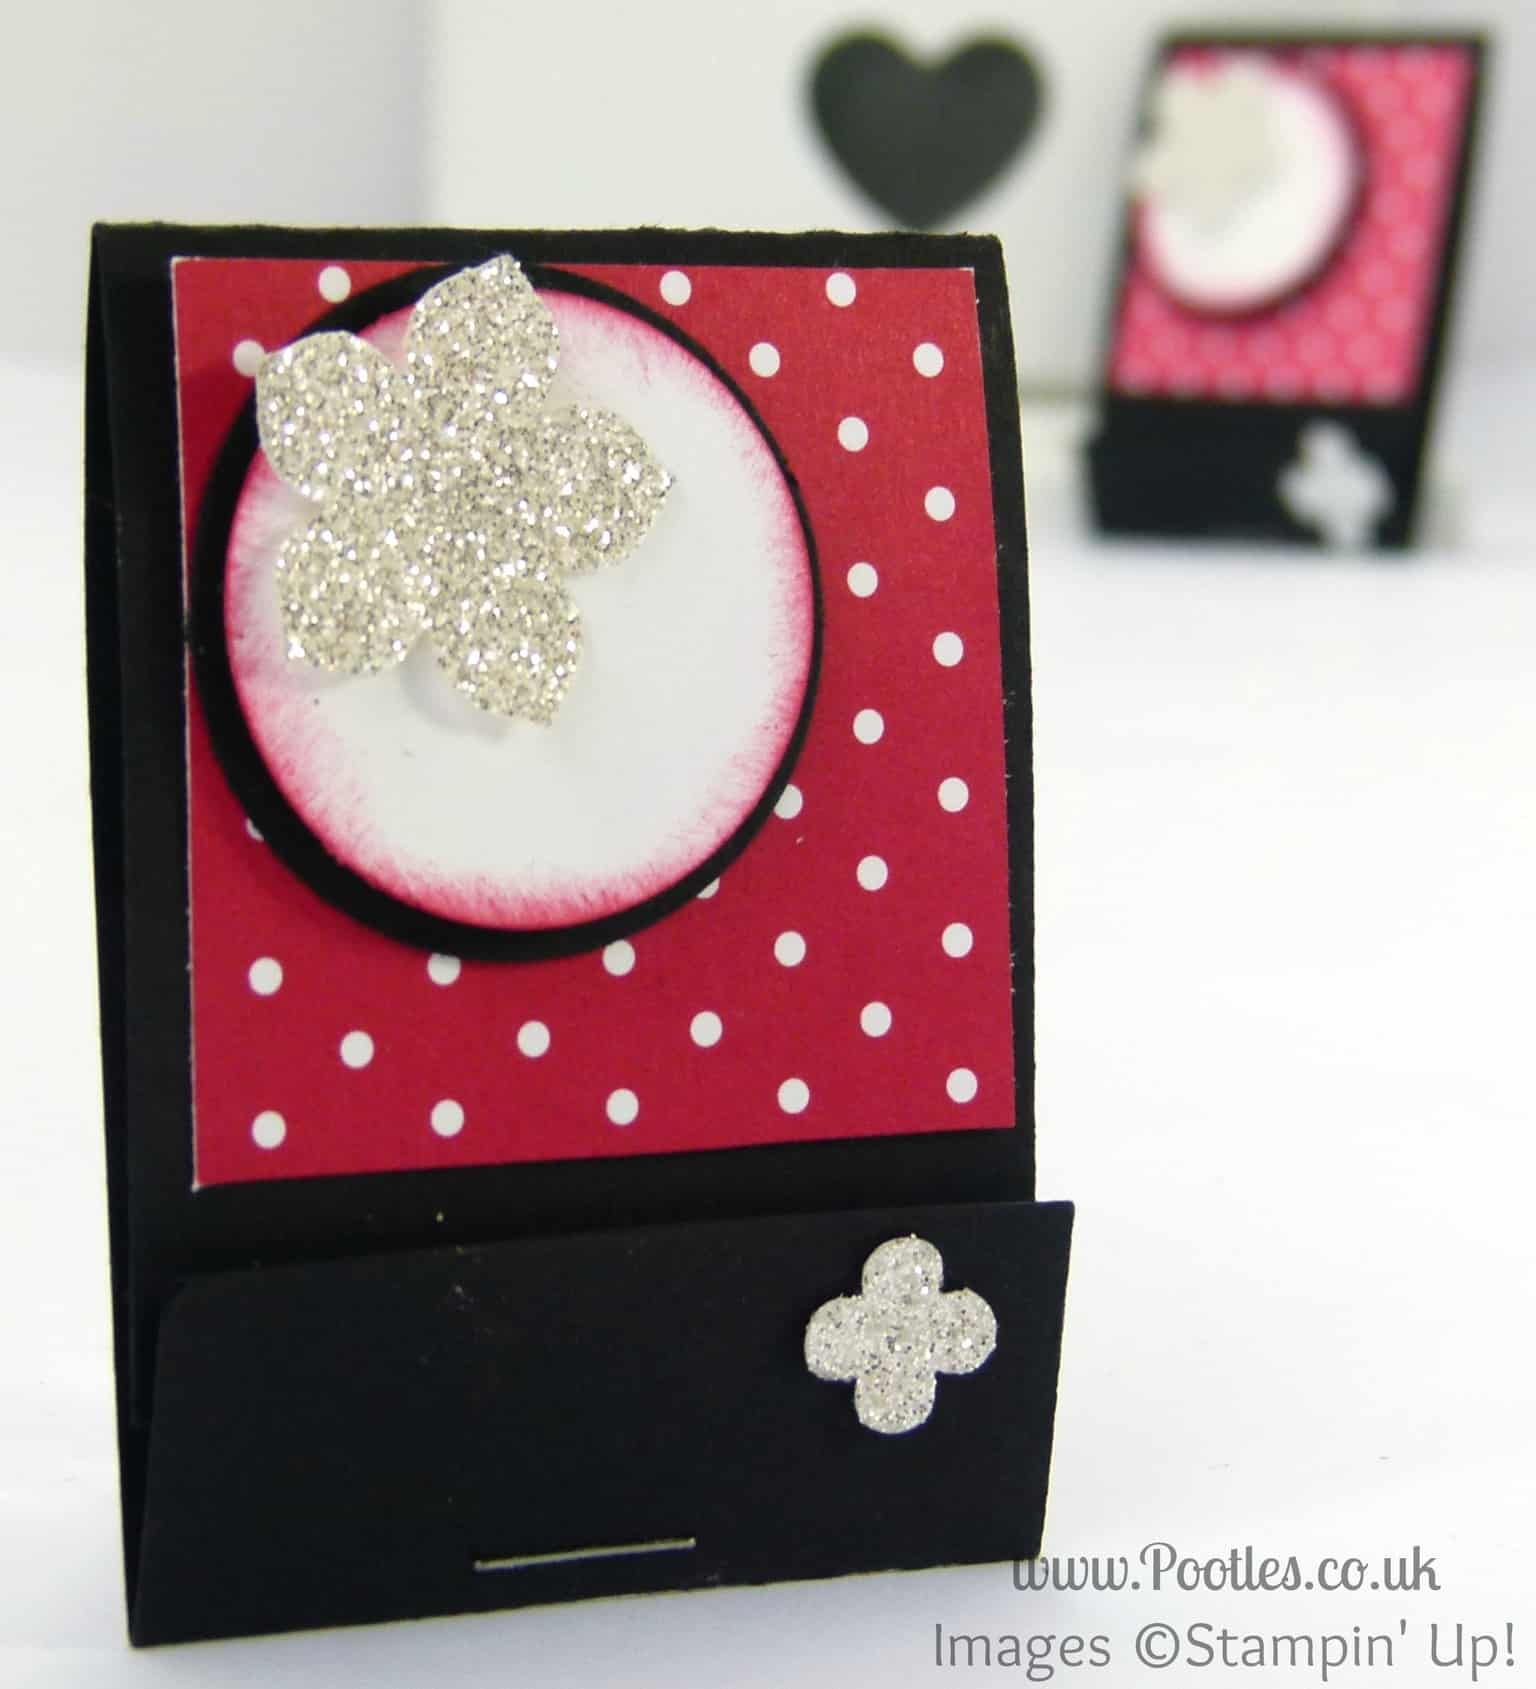 Stampin' Up! UK Scissor Charm Matchbook Tutorial